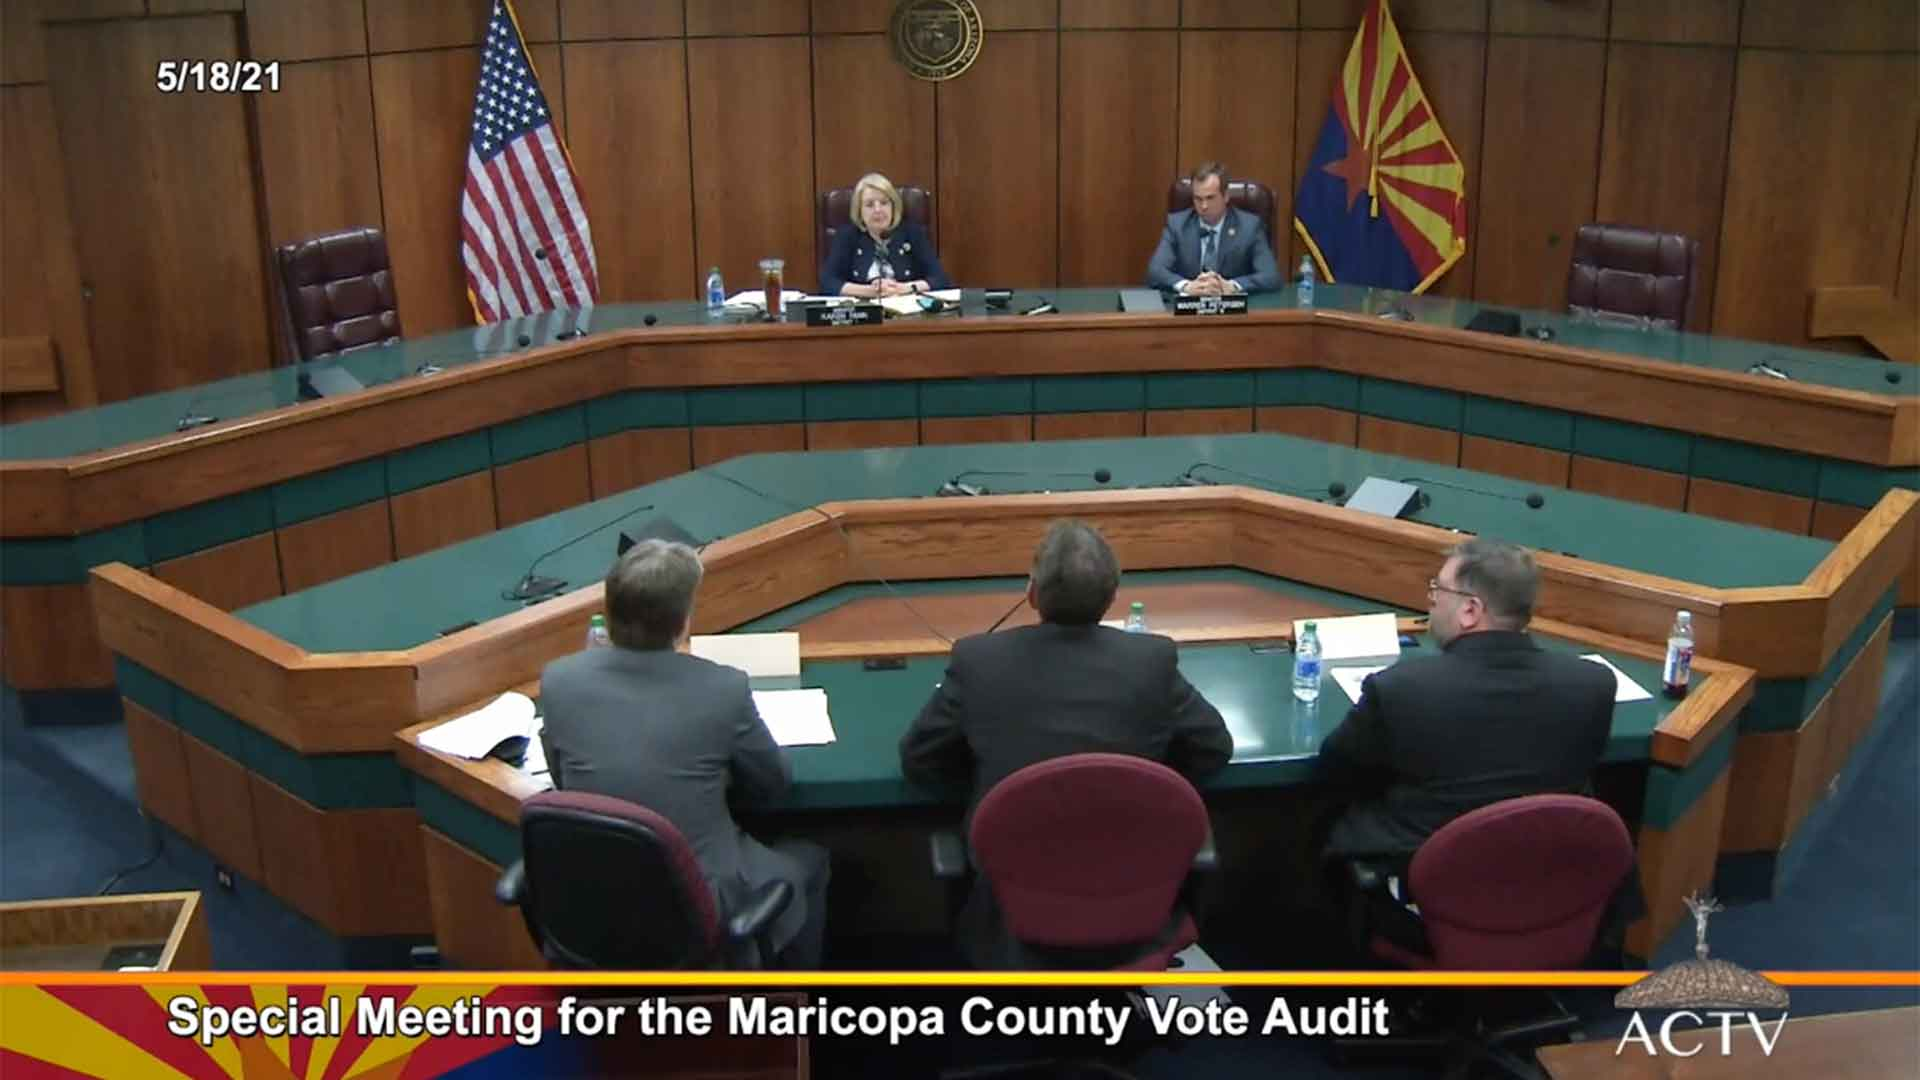 Sen. President Karen Fann and Sen. Warren Petersen, the chair of the Senate Judiciary Committee, meet with members of the team auditing the results of the Presidential election in Maricopa County. May 18, 2021